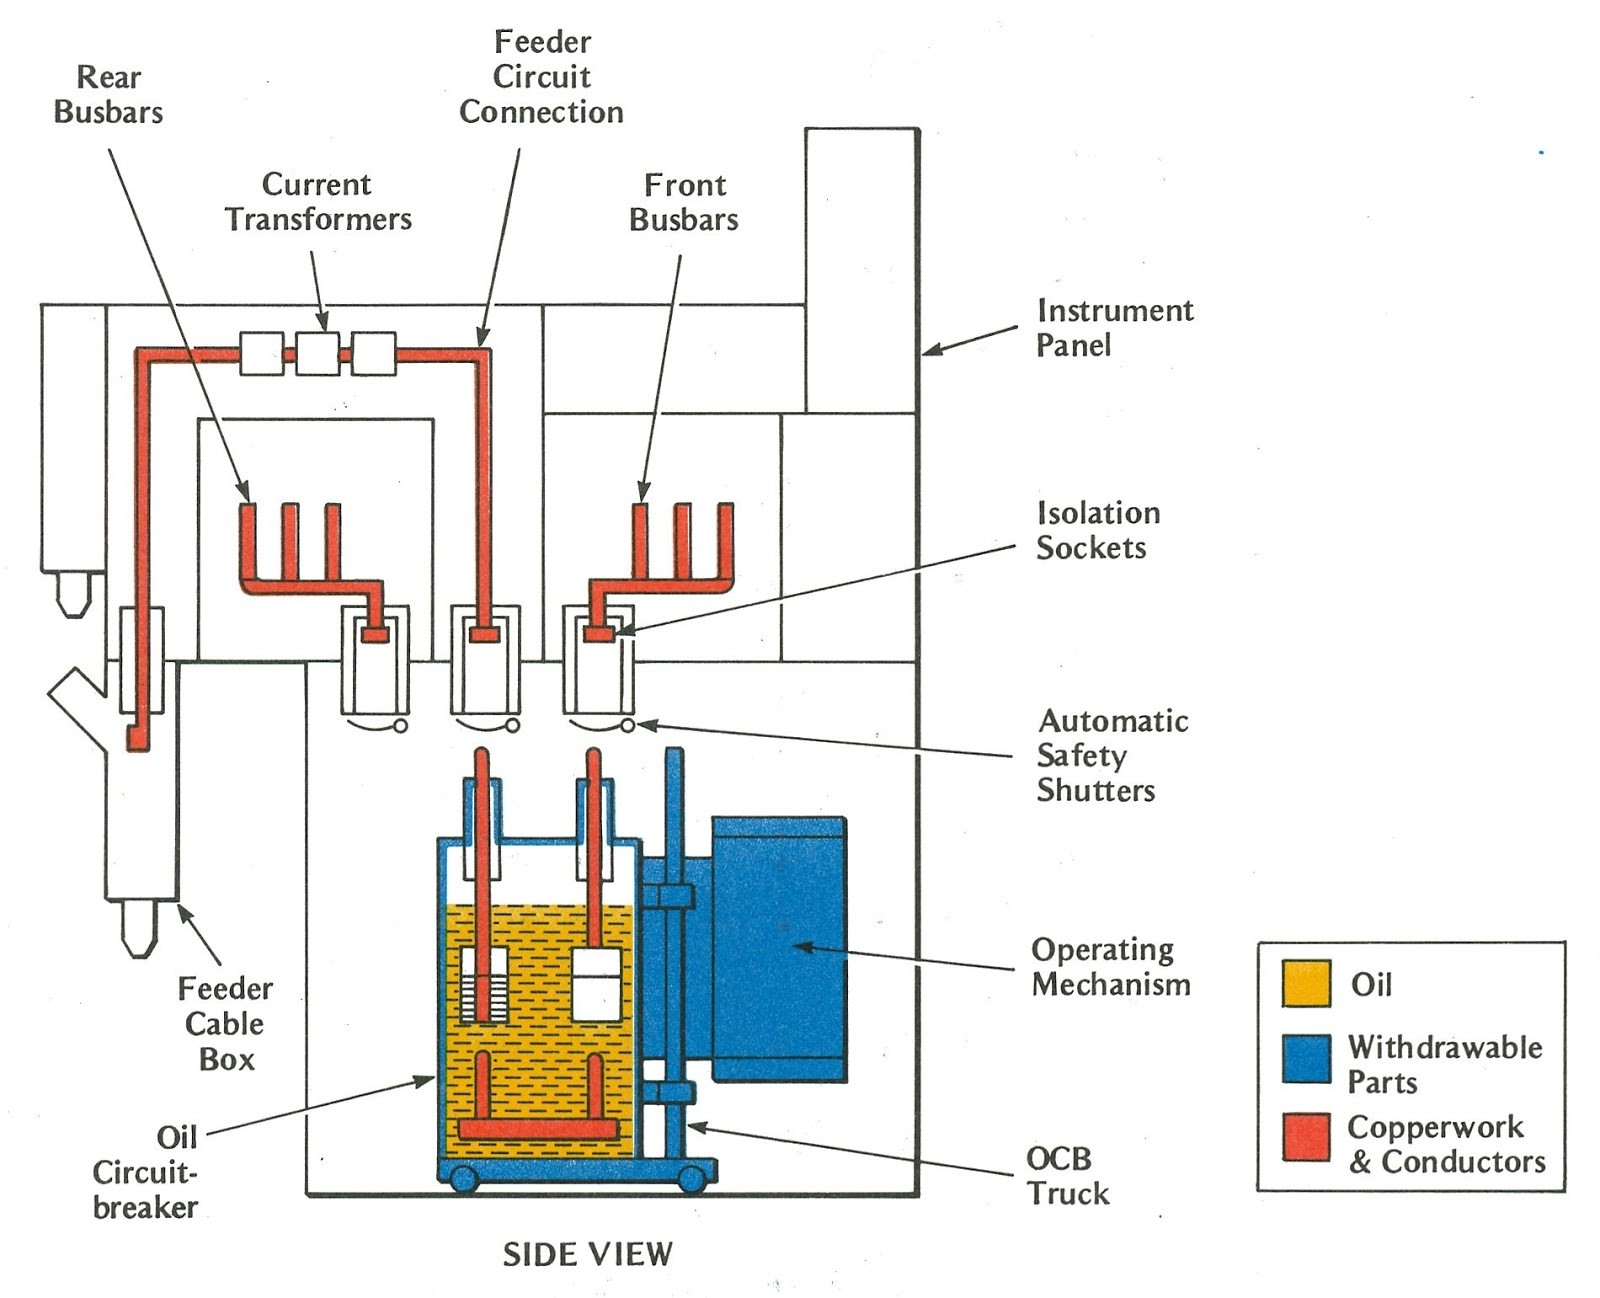 Engineering s Videos and Articels Engineering Search Engine CHAPTER 2 HIGH VOLTAGE SWITCHGEAR